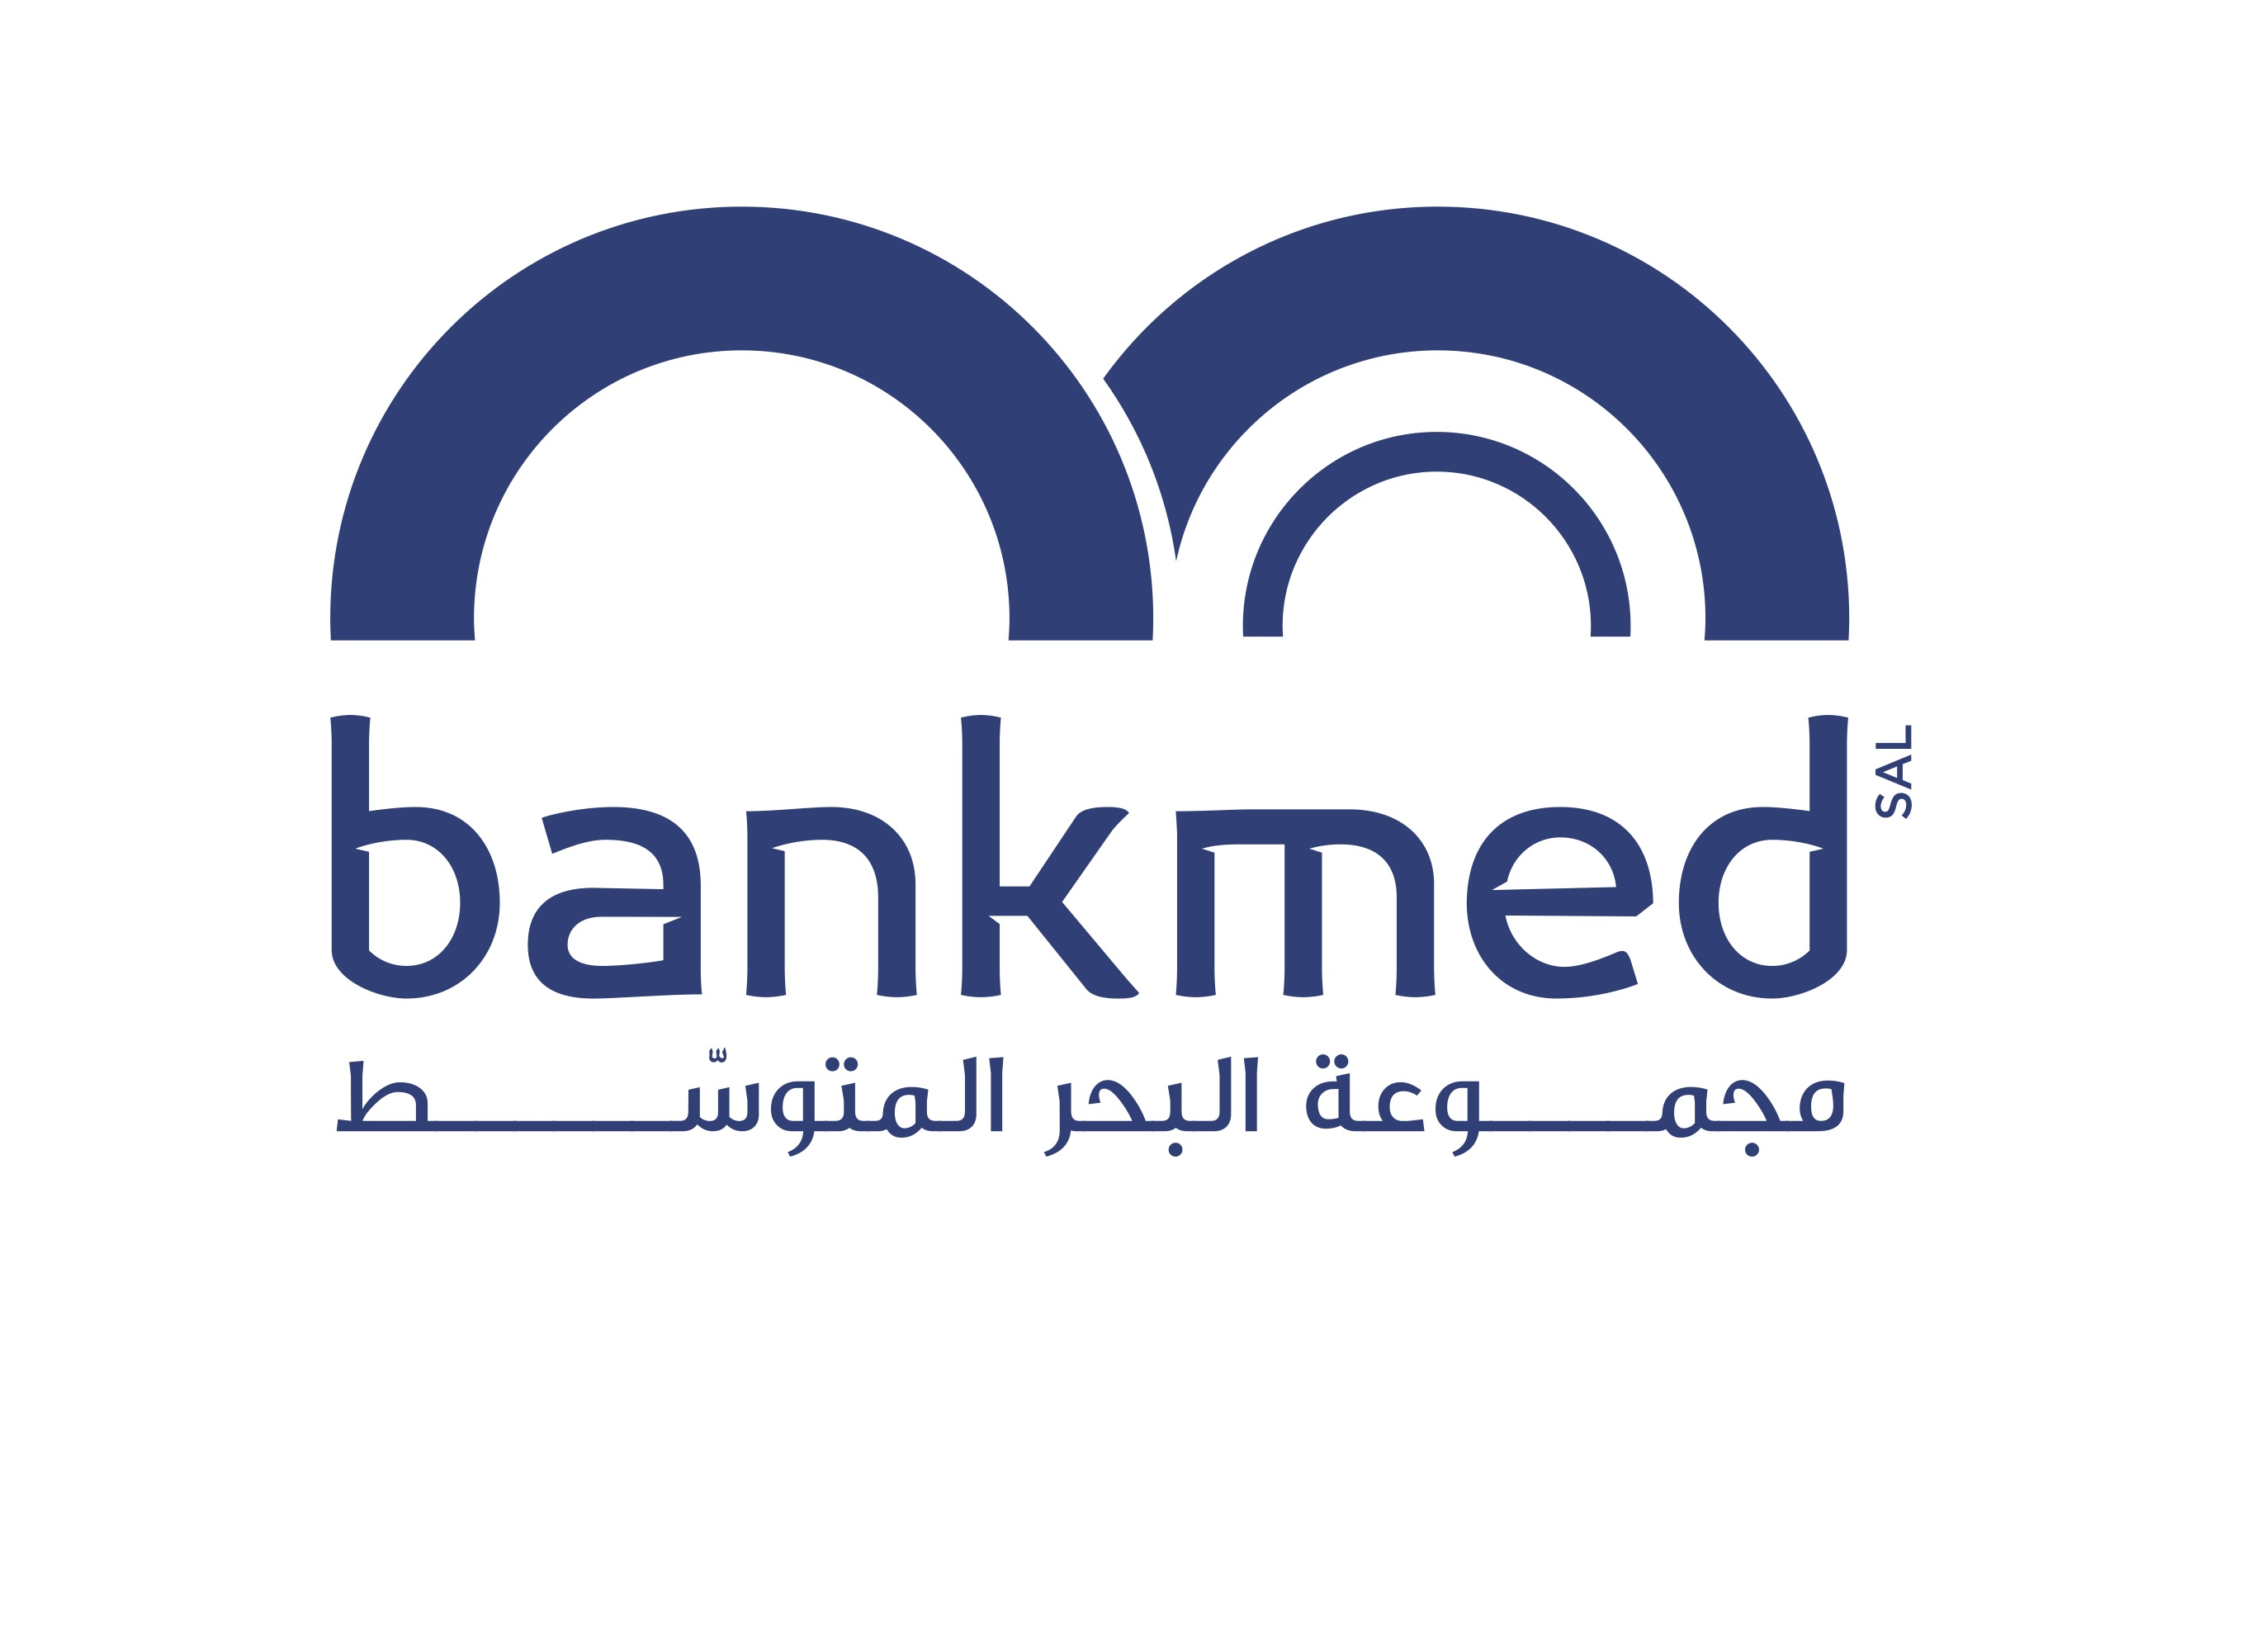 Bankmed - Car Loan